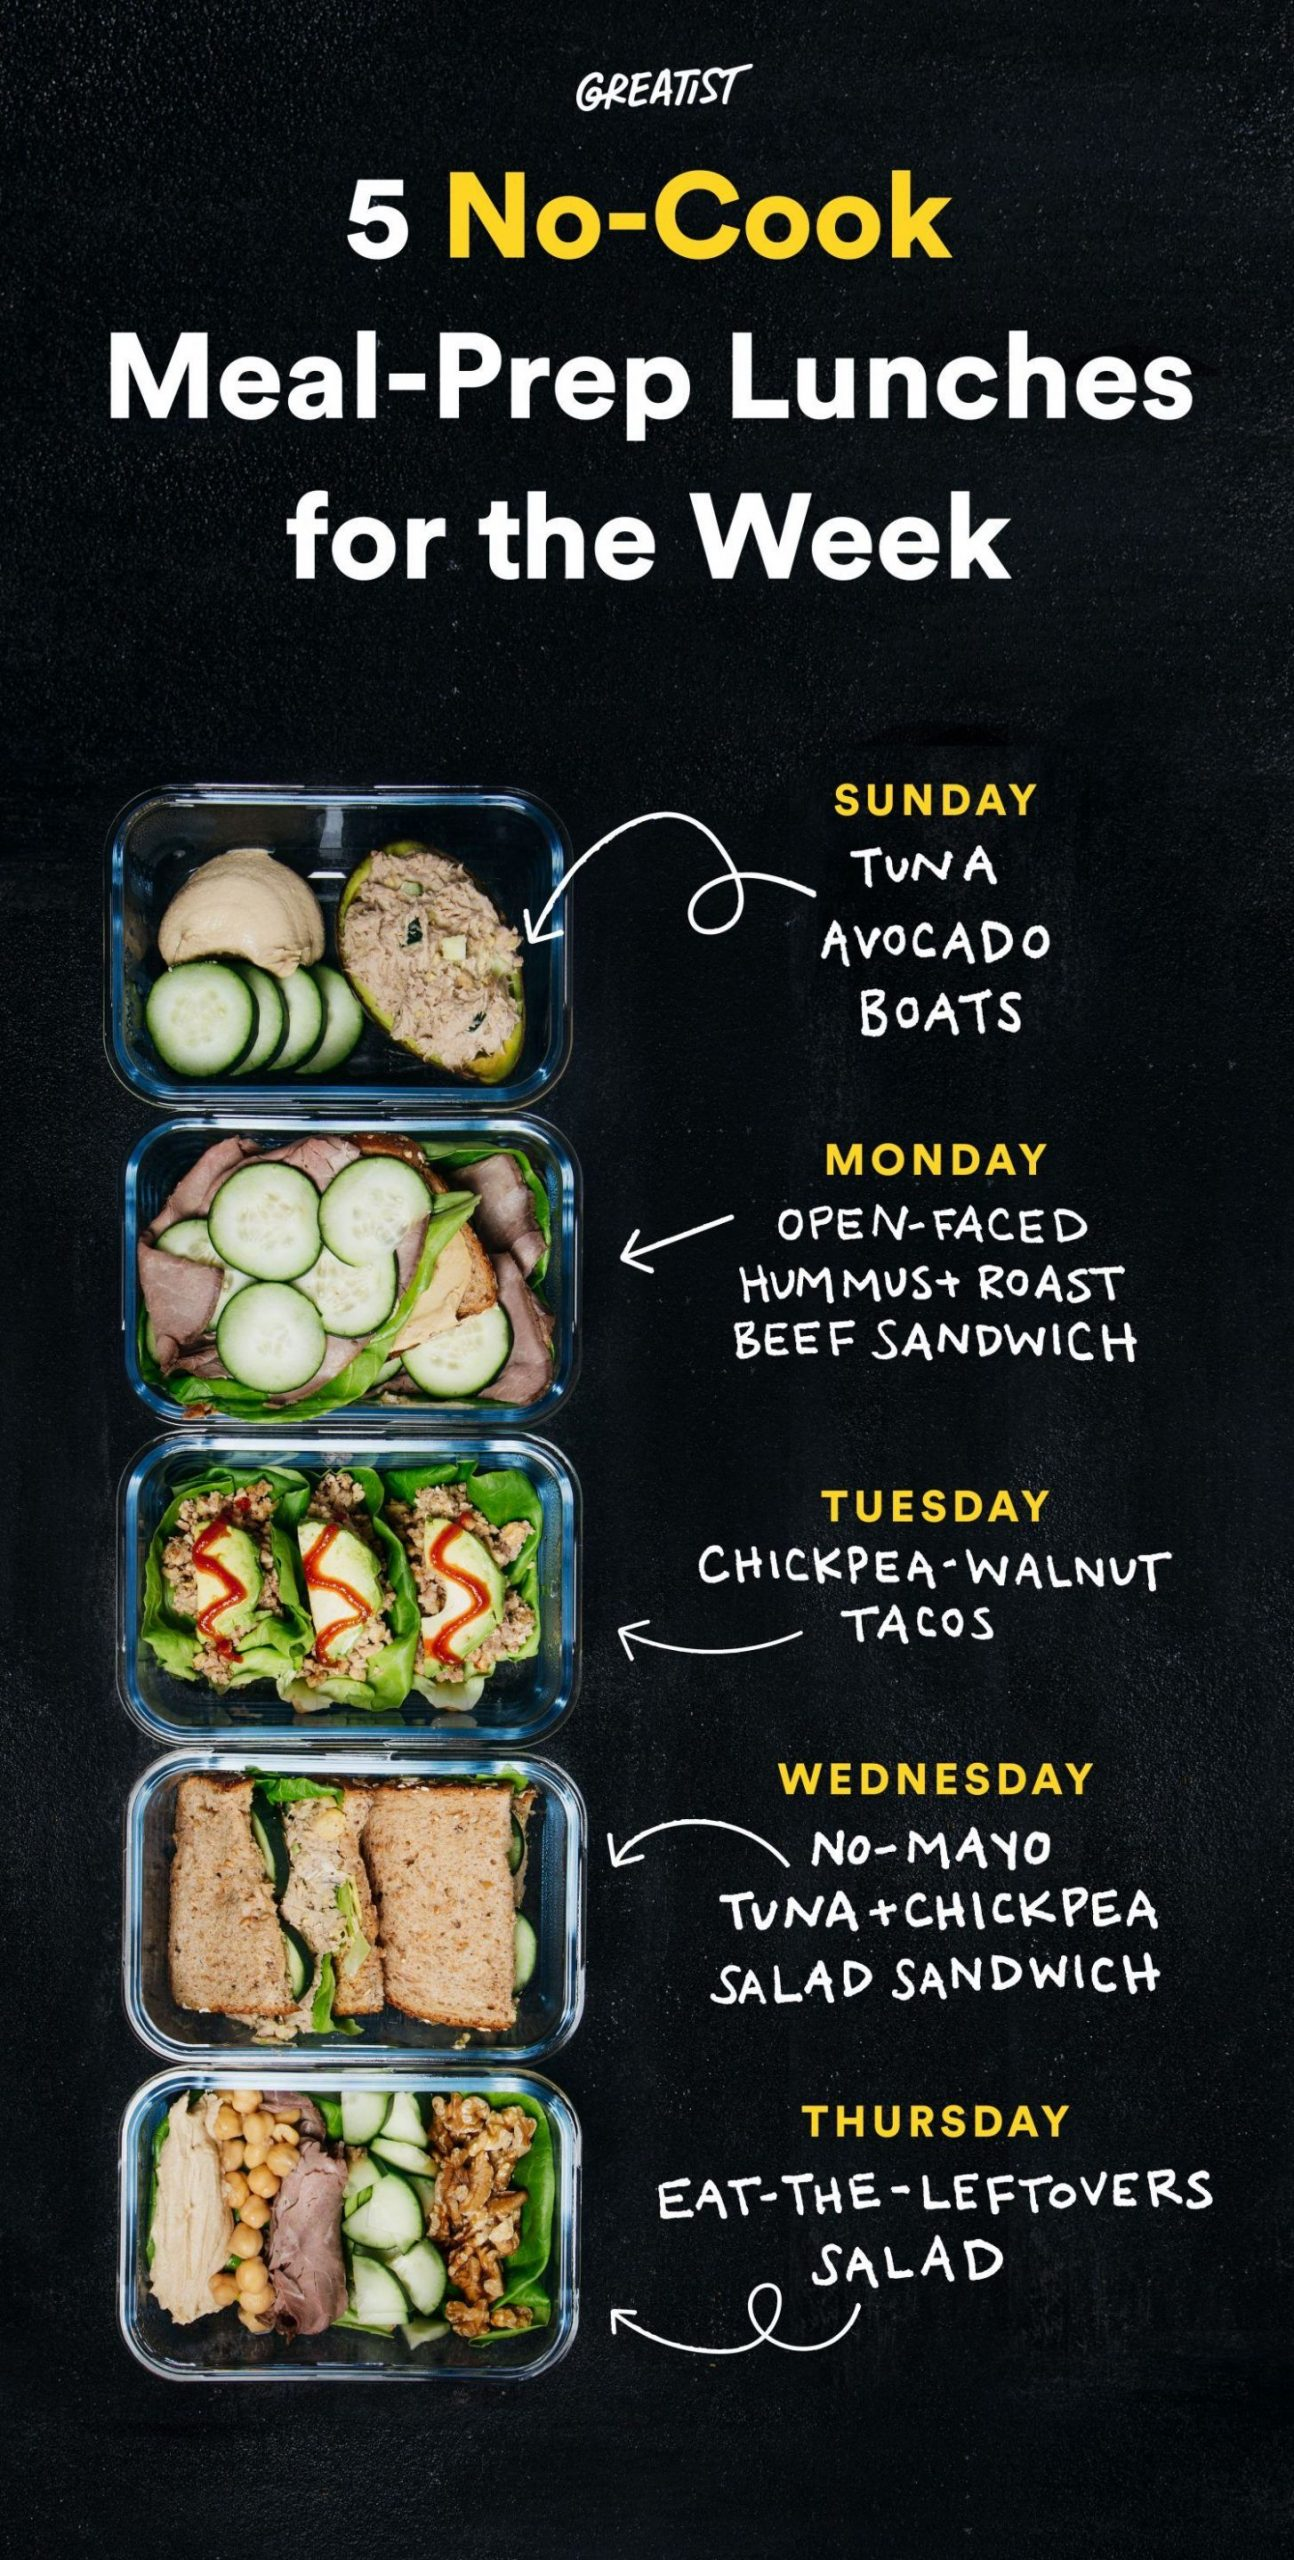 A No-Cook Meal-Prep Plan With Just 8 Ingredients for 8 Easy ..